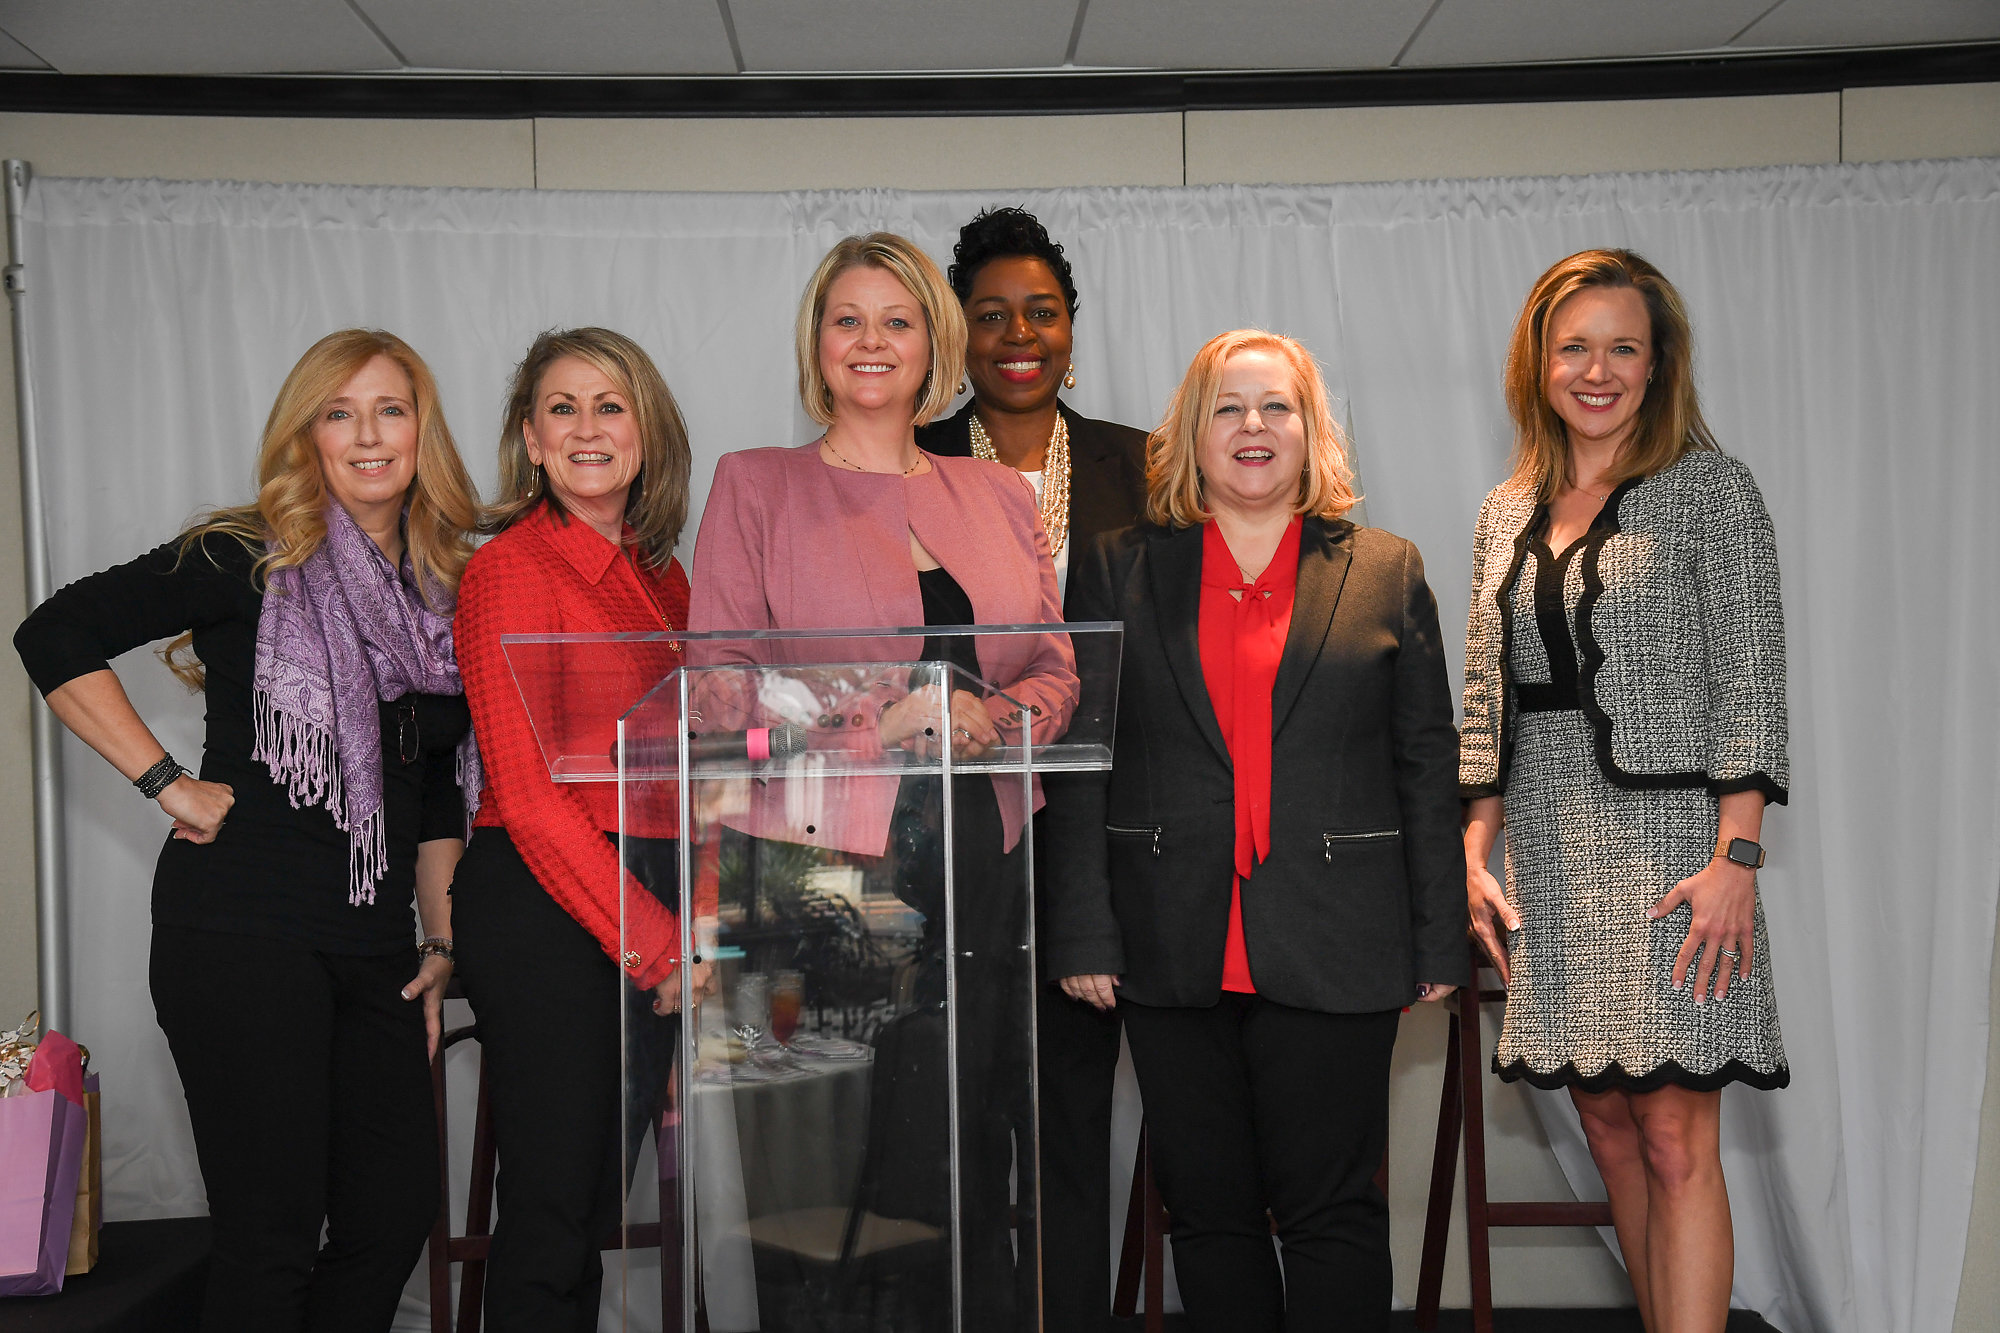 Espresso Yourself! - Wisdom from Women in BusinessThis luncheon was designed to inspire women and to provide critical funding needed to continue the important work helping survivors of violence and abuse find their way to healing.